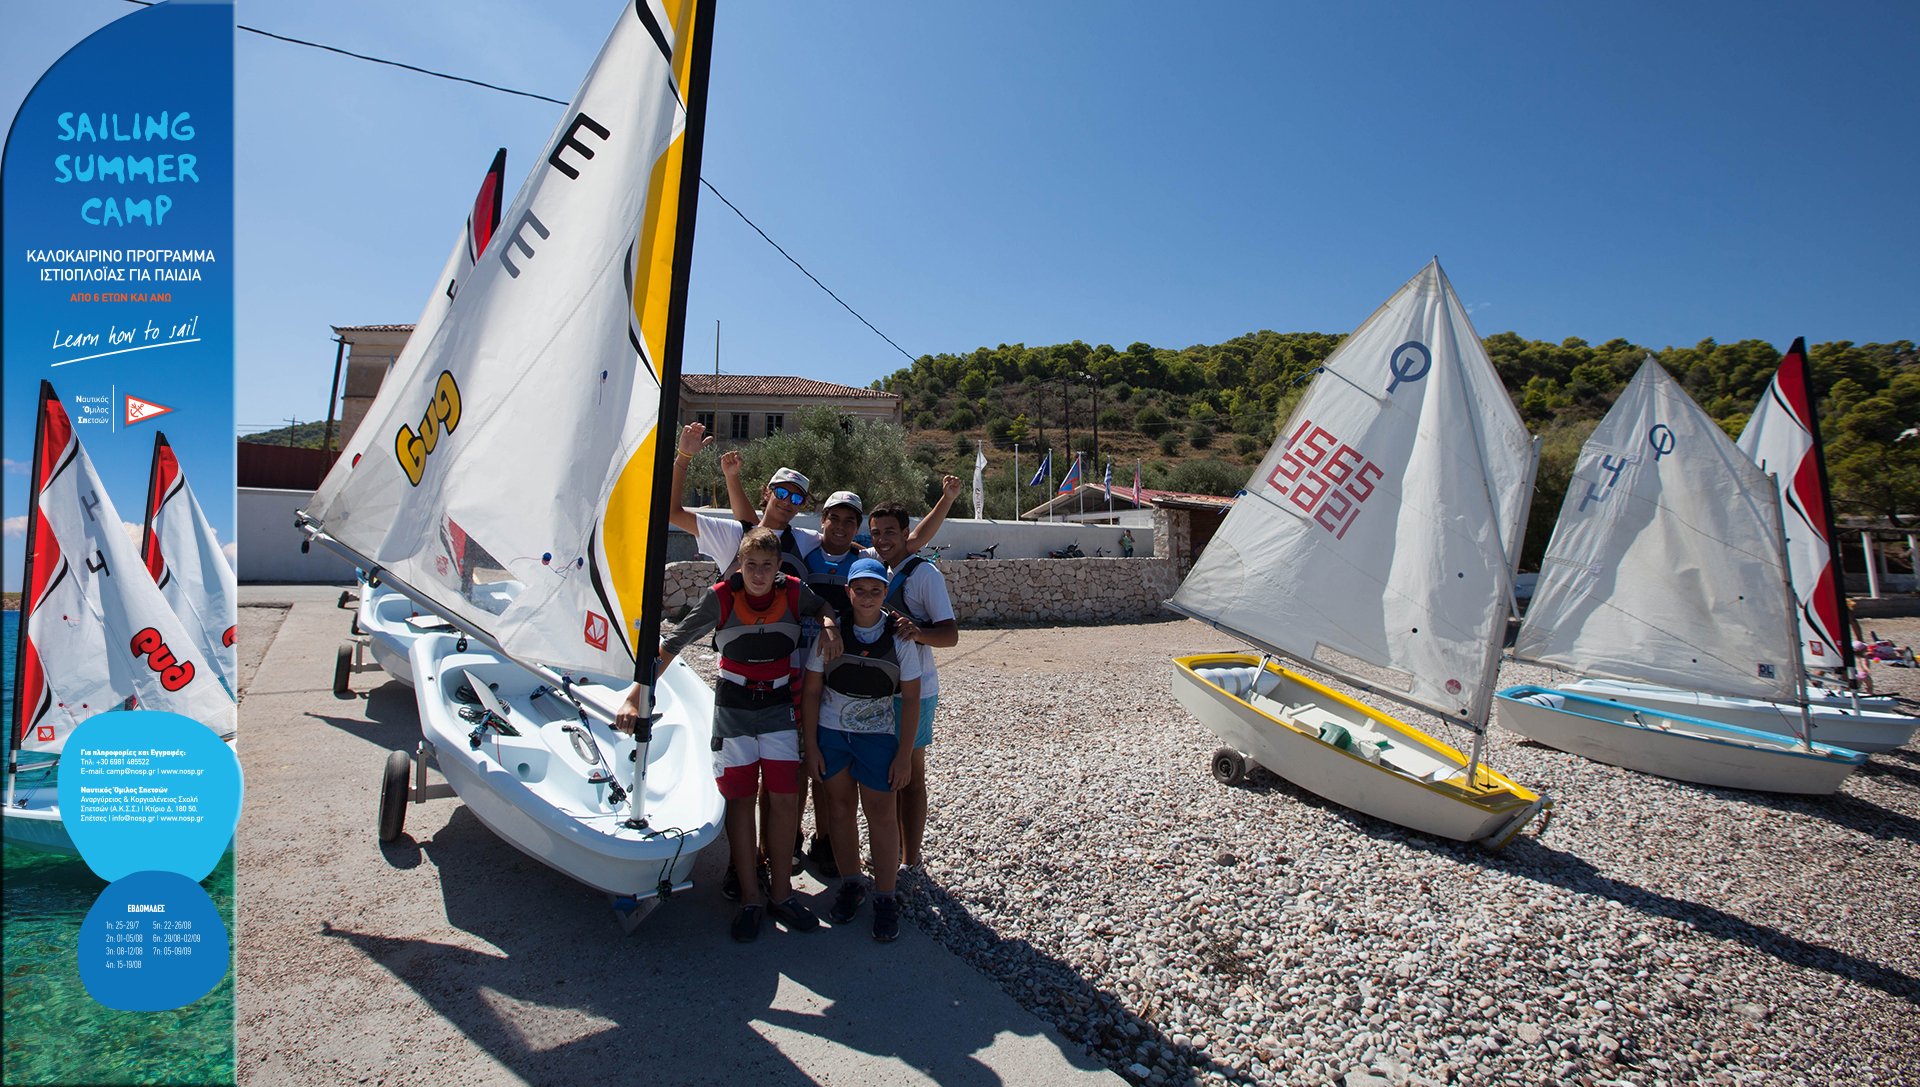 SAILING SUMMER CAMP – LEARN HOW TO SAIL